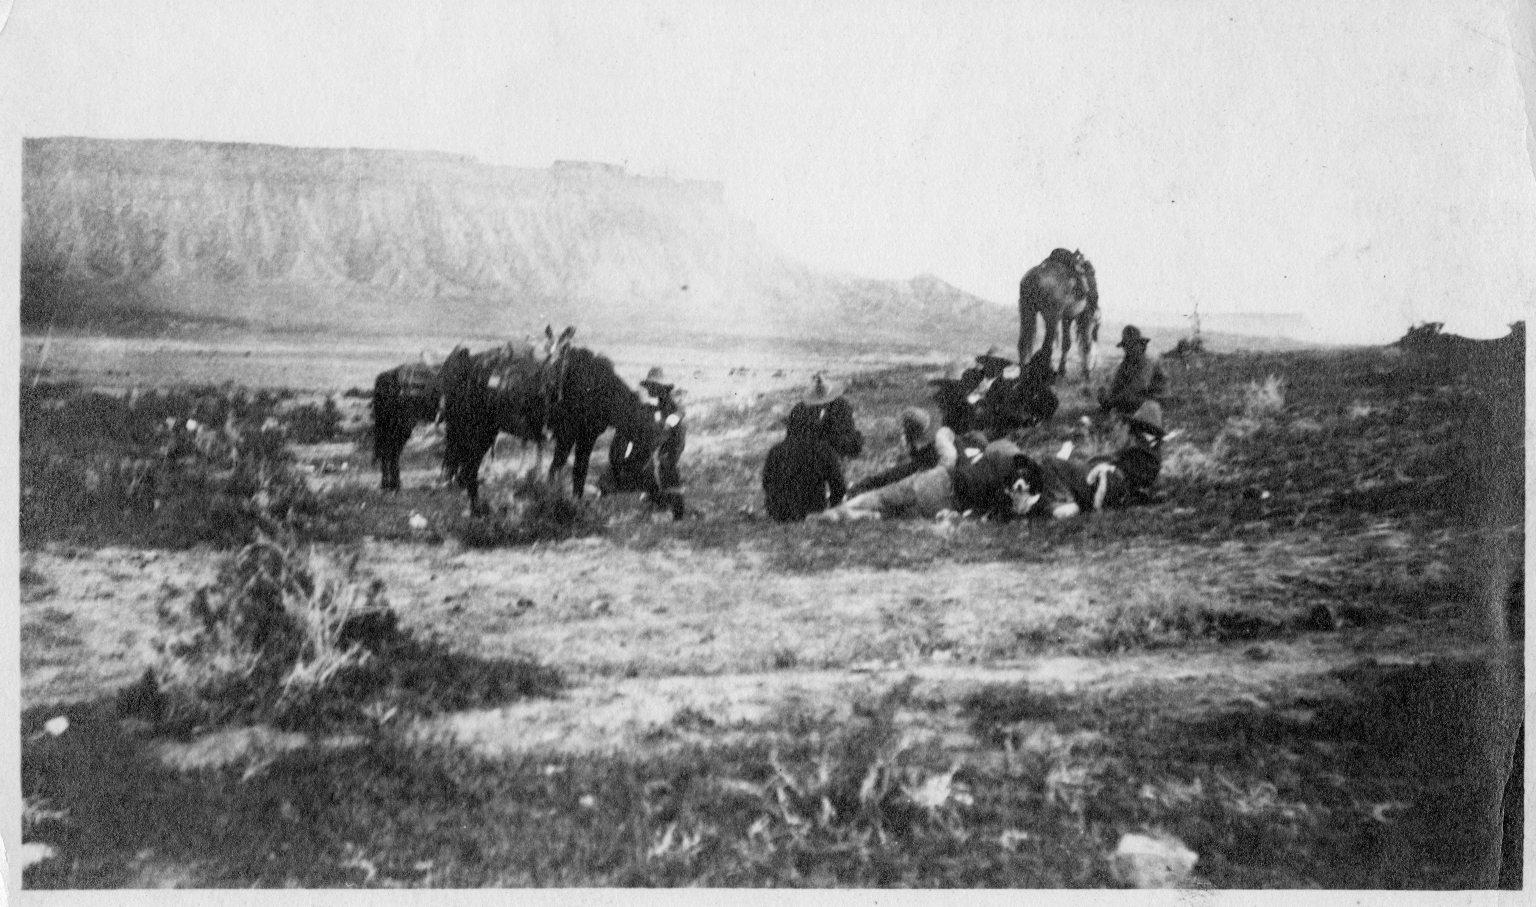 Portrait of Ute men with horses